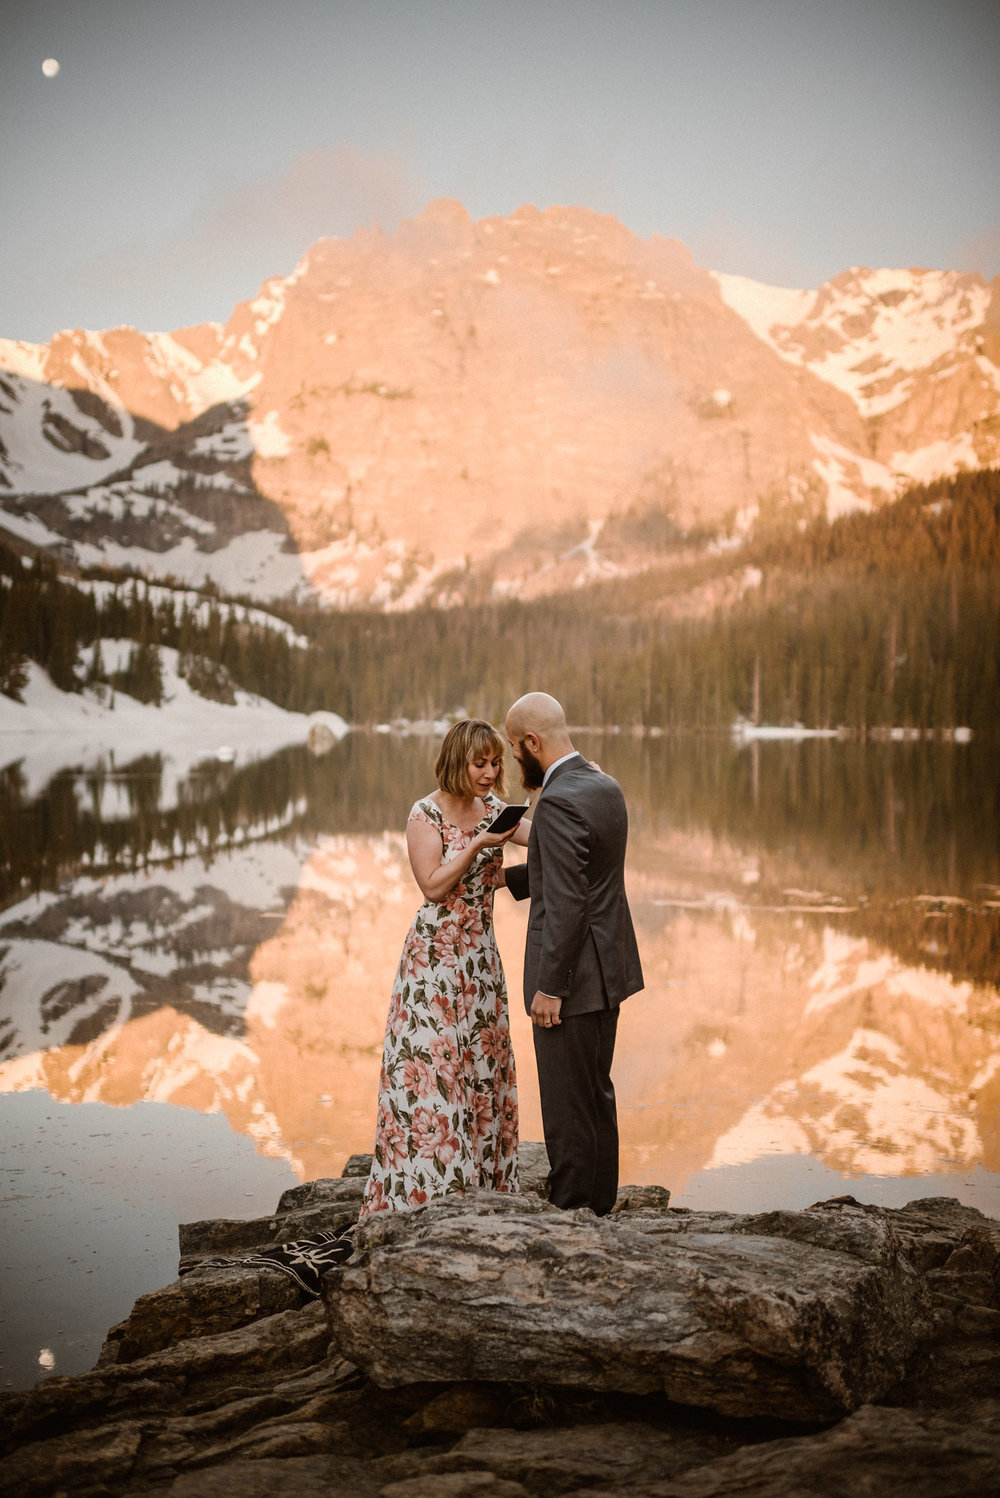 We might be bias since part of our team is based in Colorado but we think Colorado elopements are a dream! To help you plan your Colorado elopement ceremony, or an elopement anywhere in the world, we've put together this list of resources for how to find the perfect elopement location. Photo by Adventure Instead, Maddie Mae, Destination Wedding Elopement Photographers.